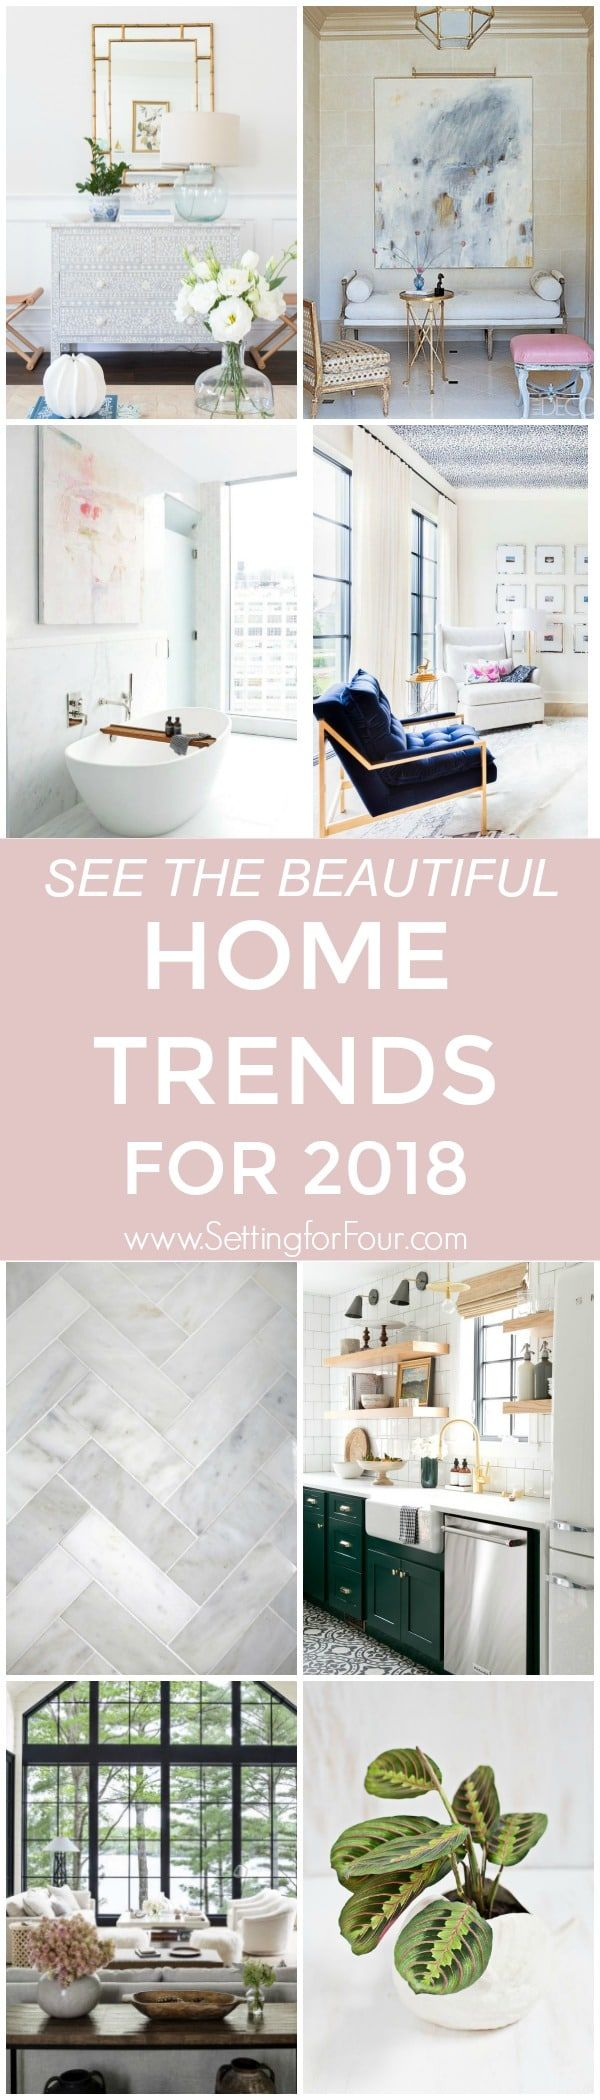 Looking to refresh your home decor or renovate? Building a new home or just want to tweak your accents? Take a look at the best Home Trends for 2018 in Design and Decor straight from the trend list on Pinterest! Pinterest has released it's fourth annualtop 100 trendsfor 2018, and the decor list is defined by both bold color and neutral minimalistic details. #interiordesign #interiordecor #house #style #life #space #idea #trends